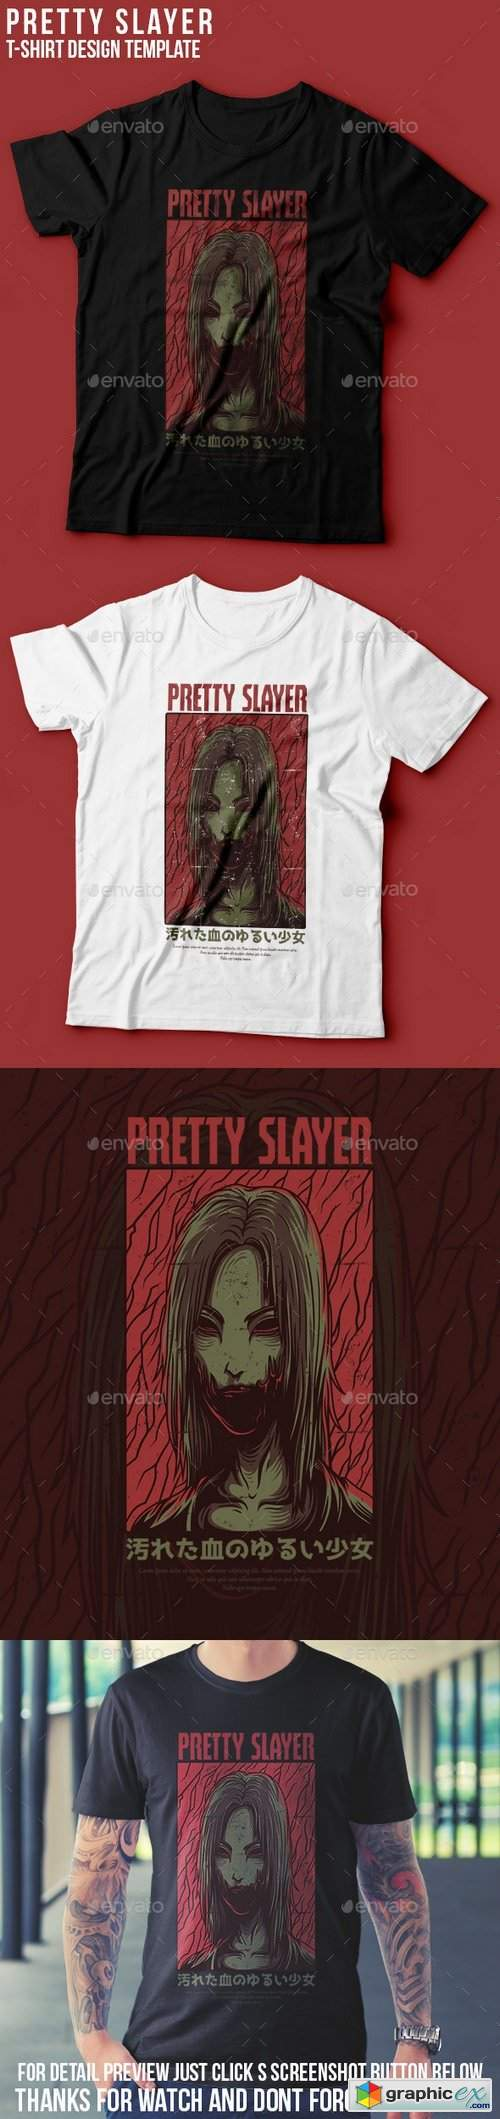 Pretty Slayer T-Shirt Design